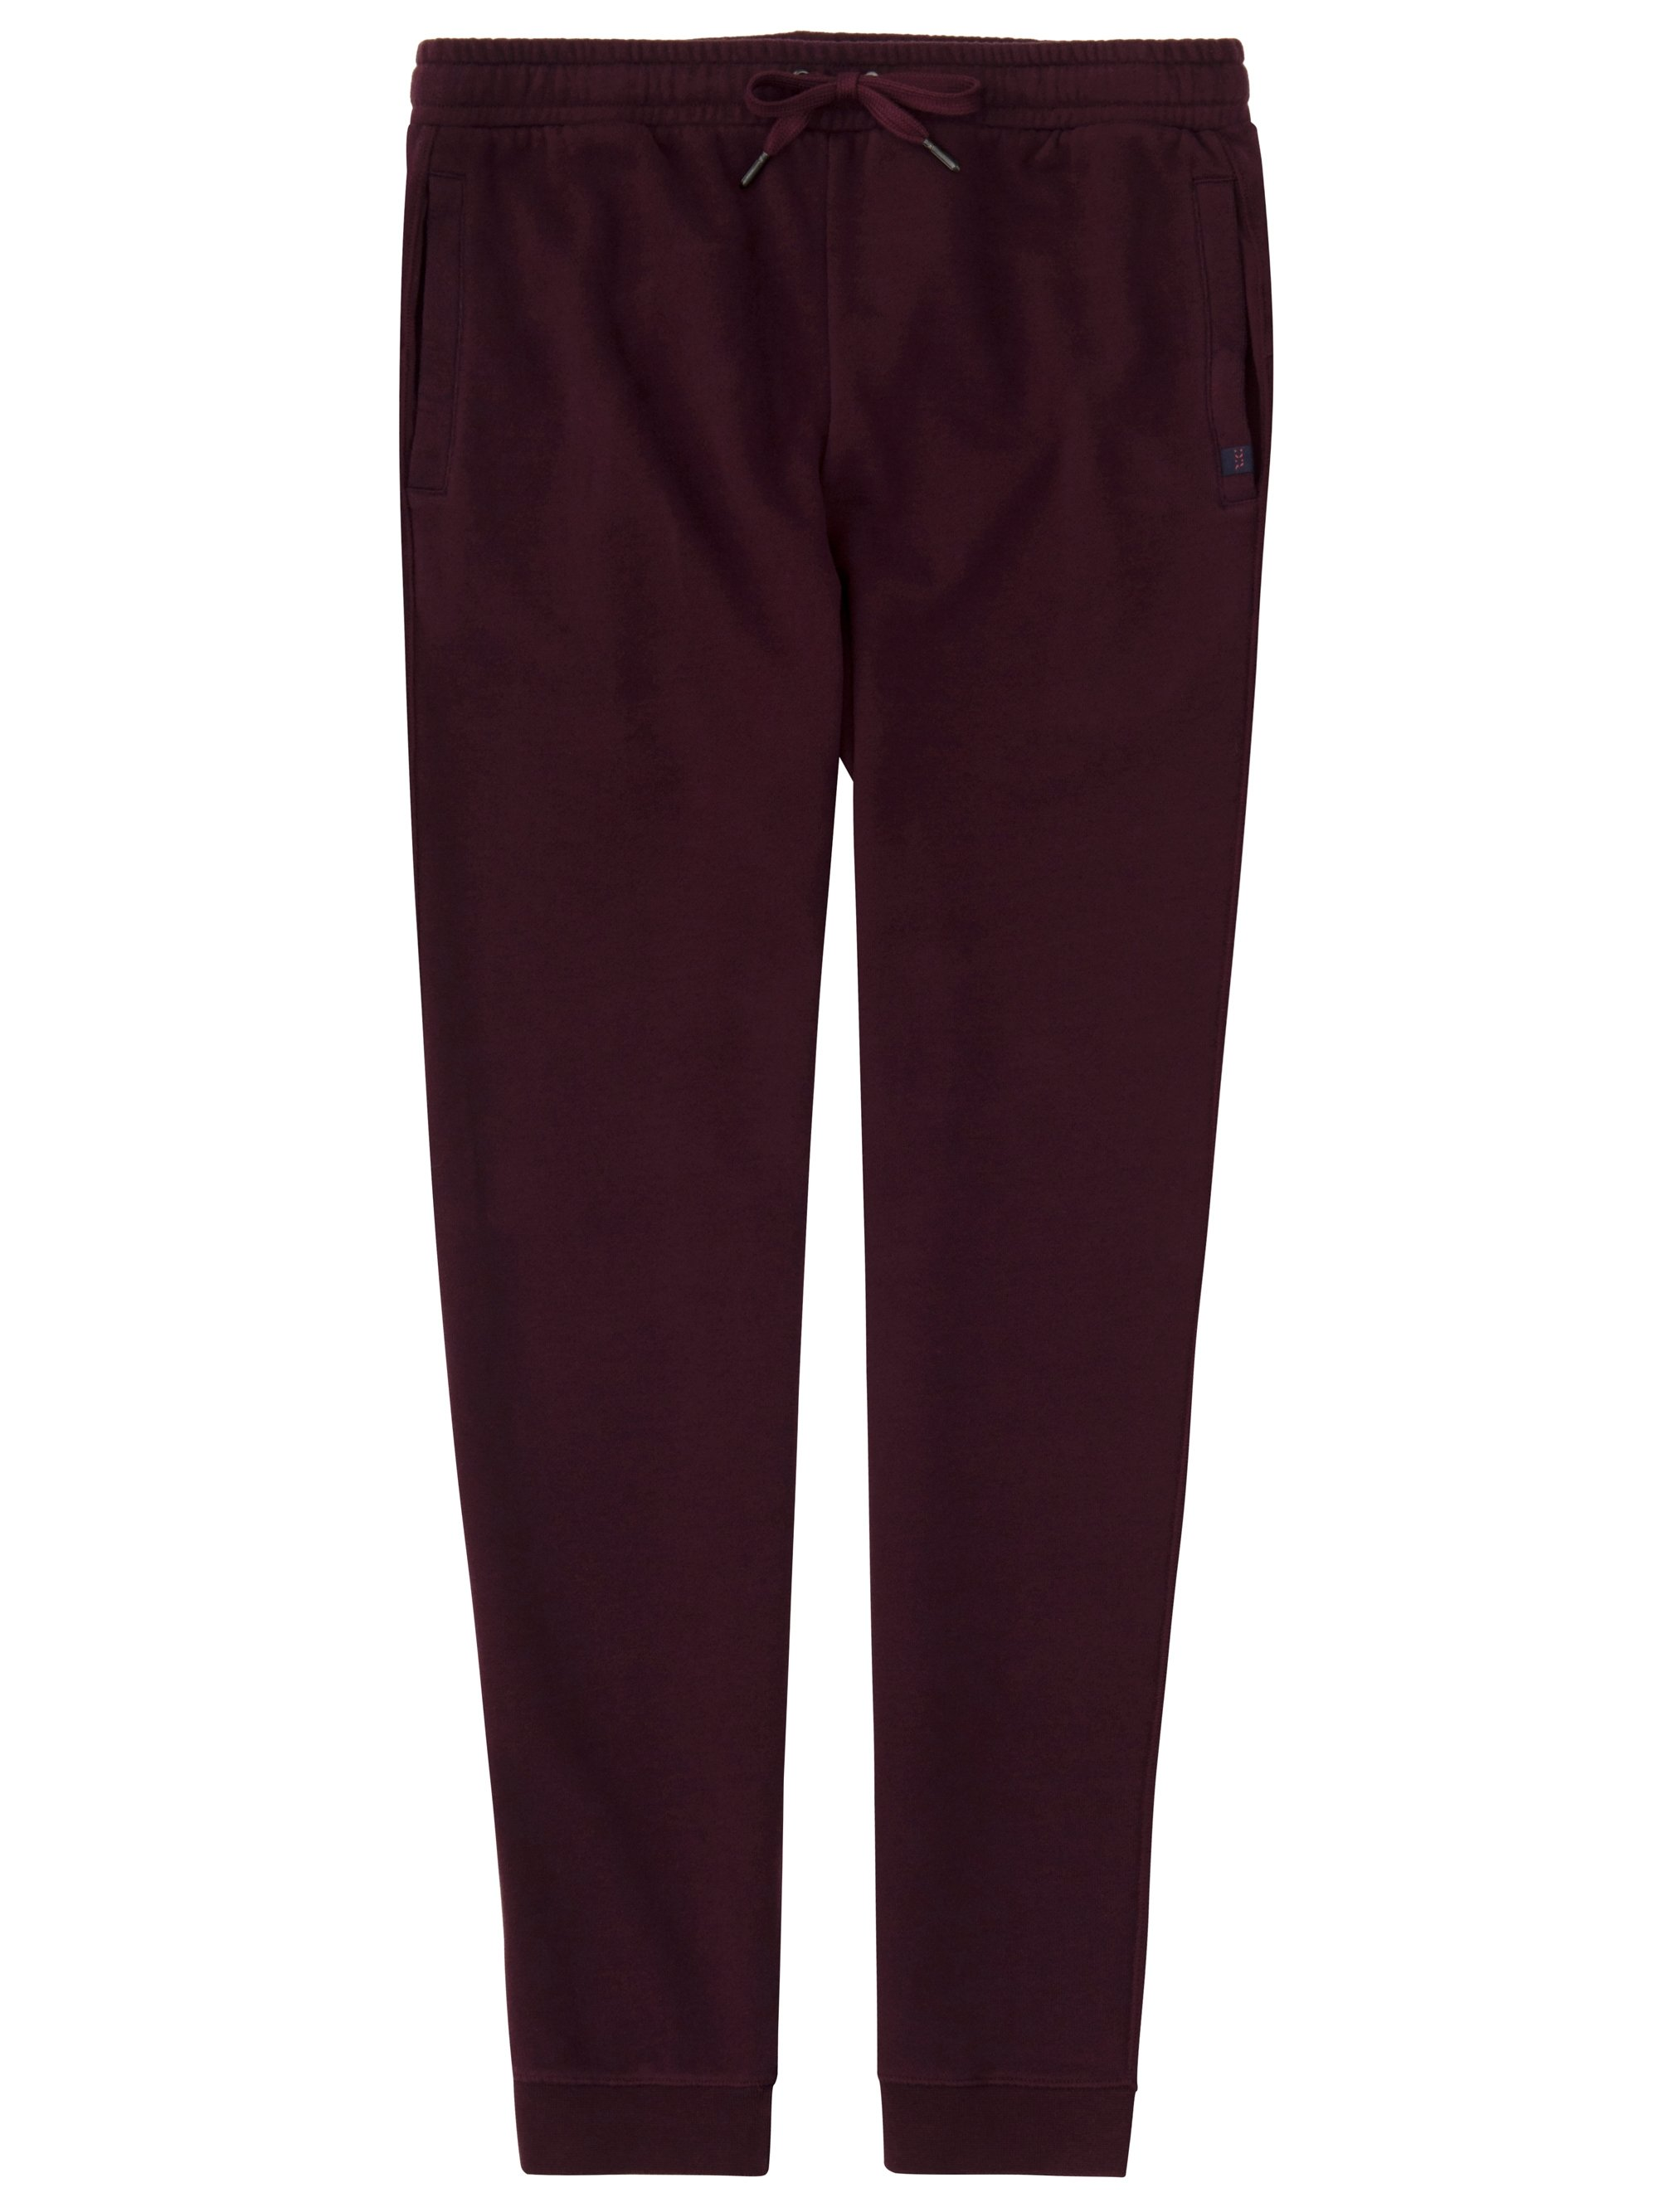 Men's Sweatpants Devon 2 Loopback Cotton Burgundy